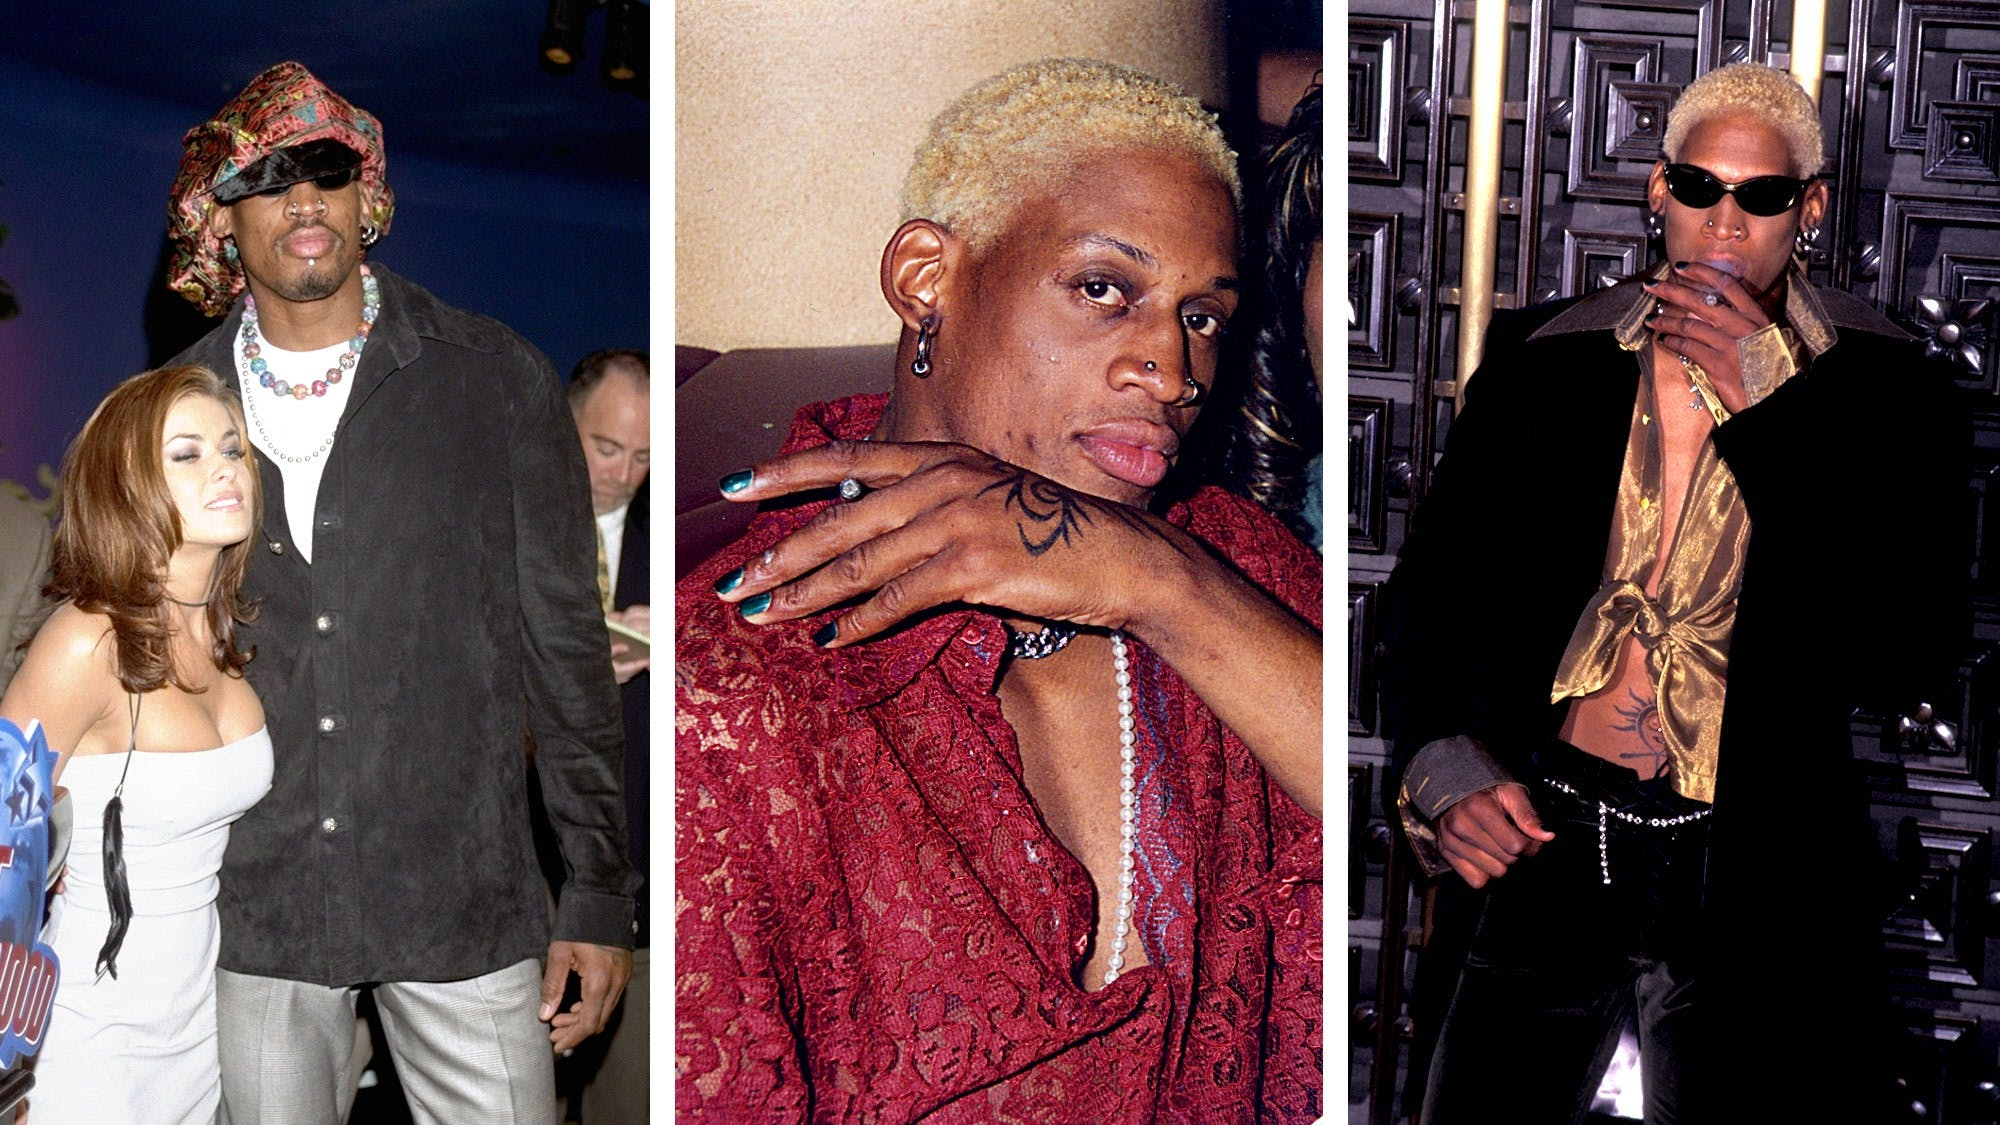 SEVEN ICONIC LOOKS OF DENNIS RODMAN